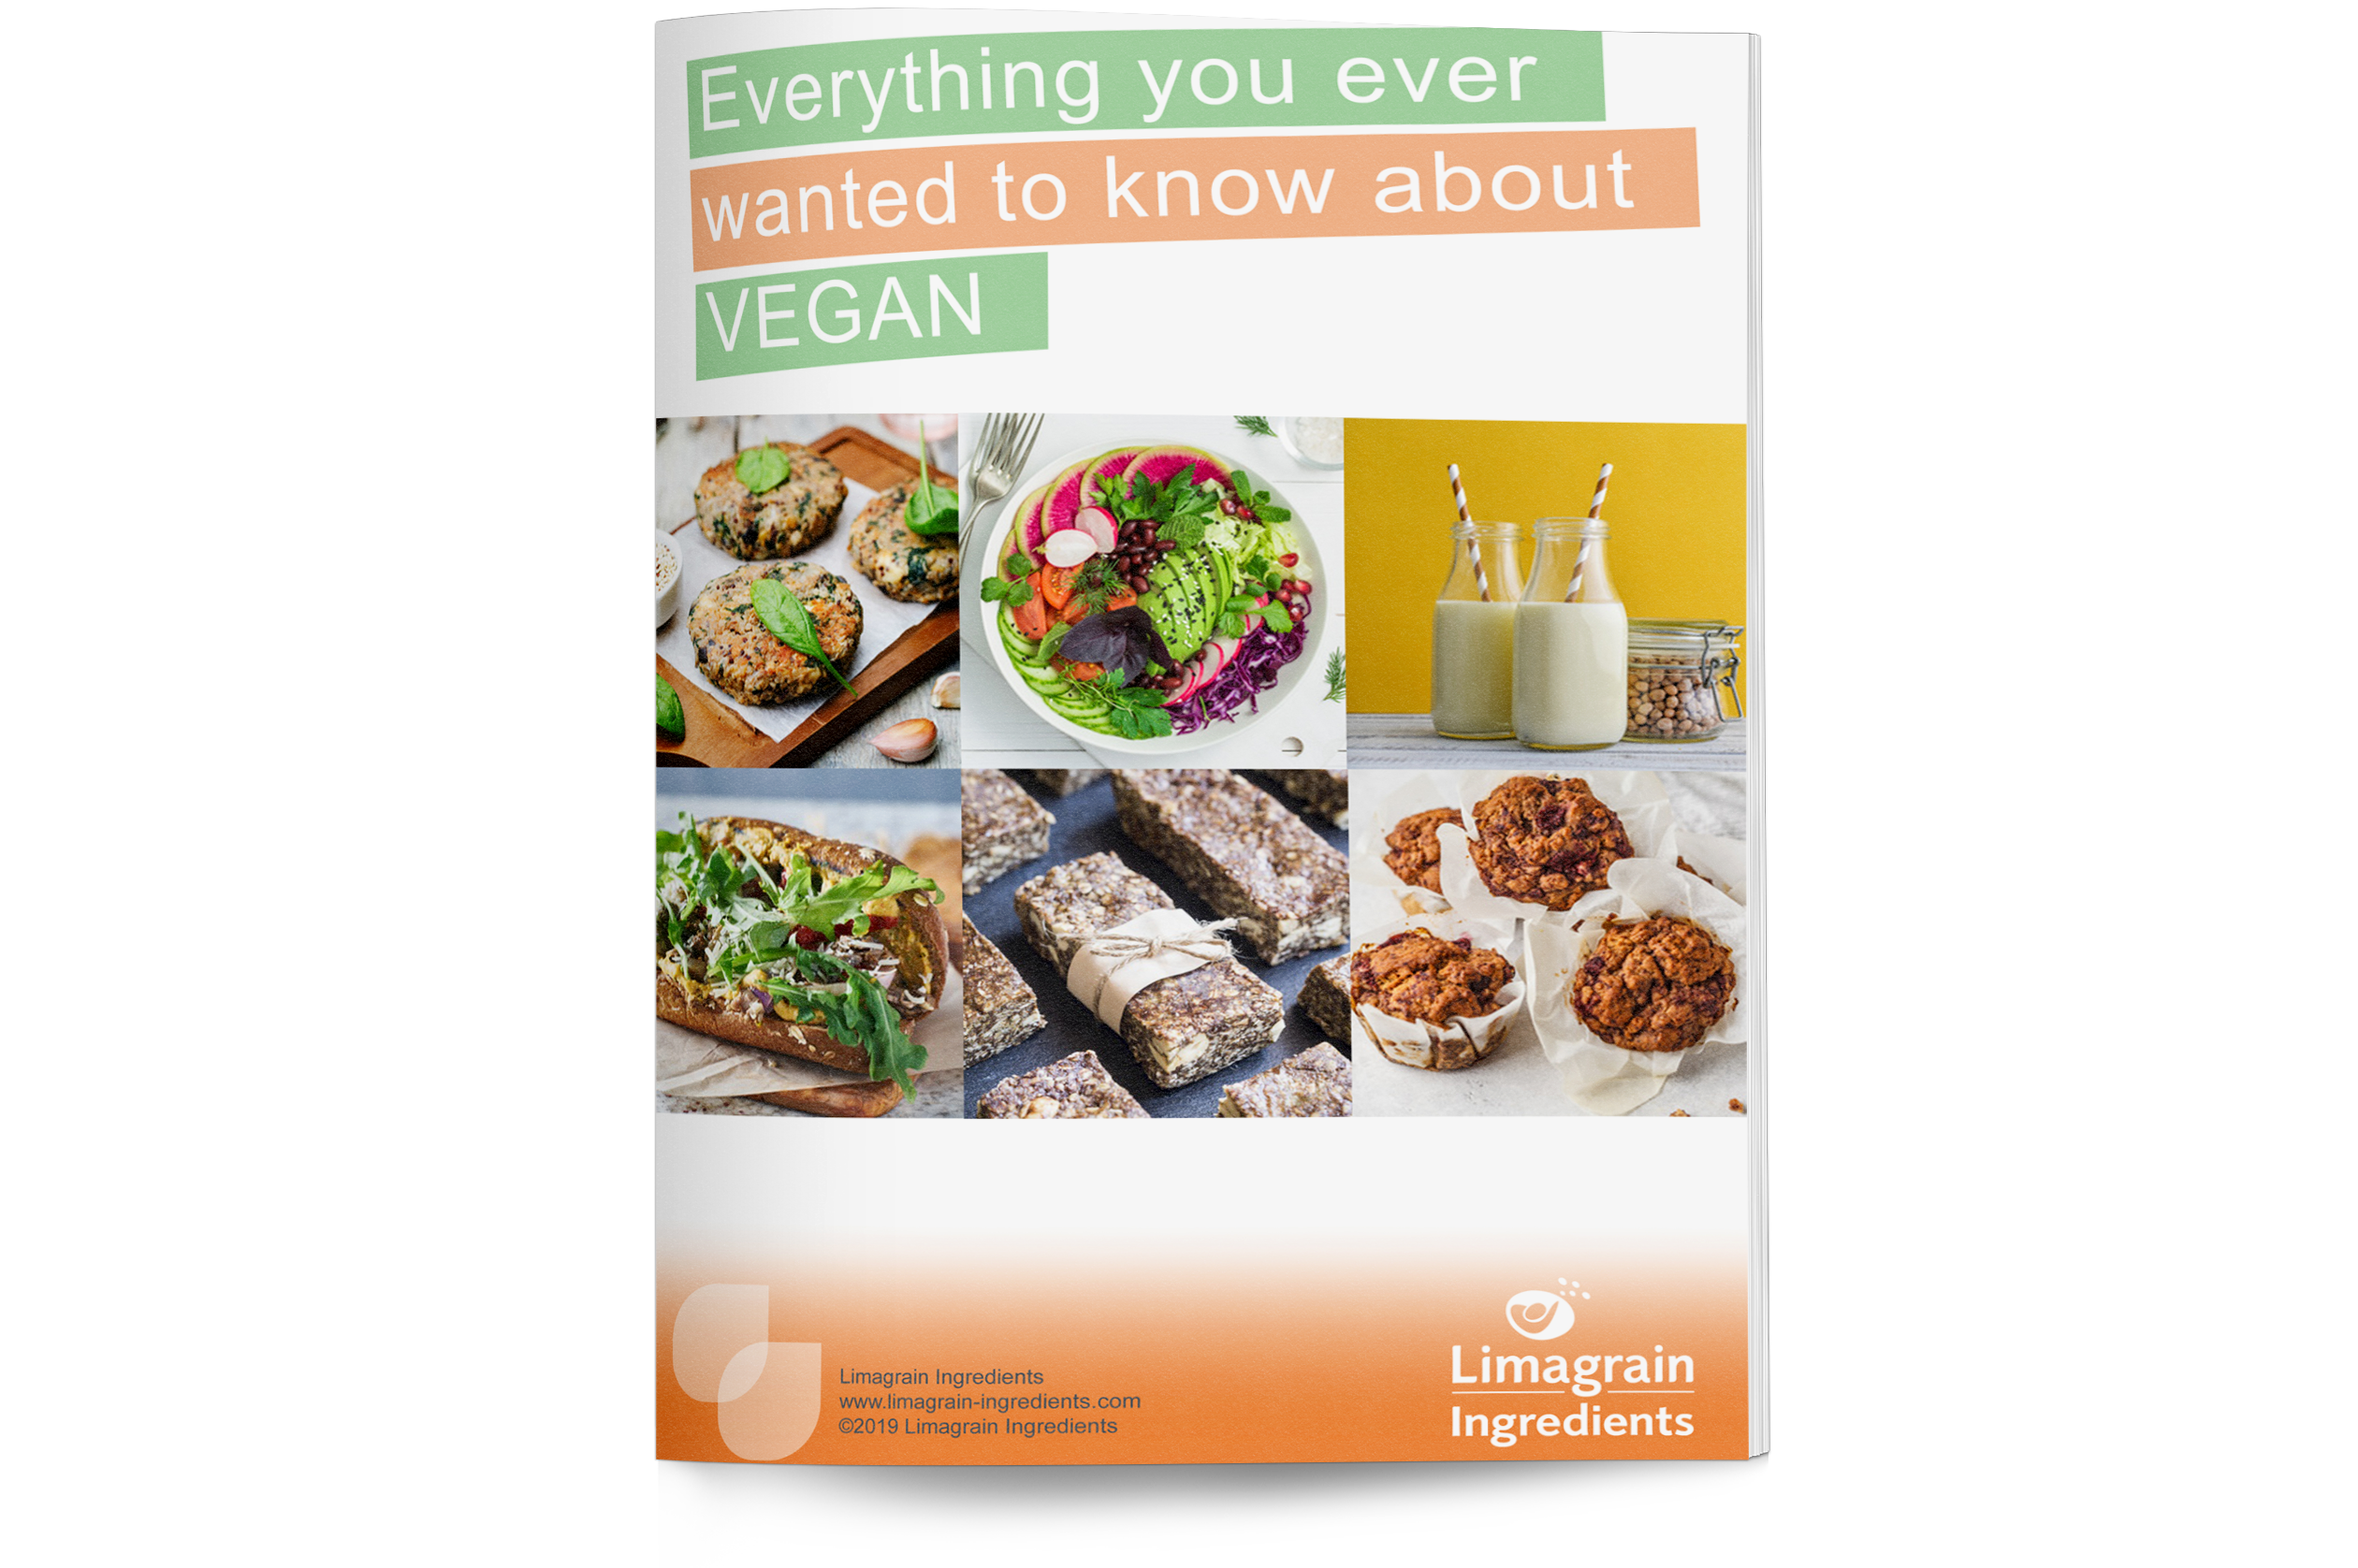 0202_ebook_vegan_mockup_EN_3